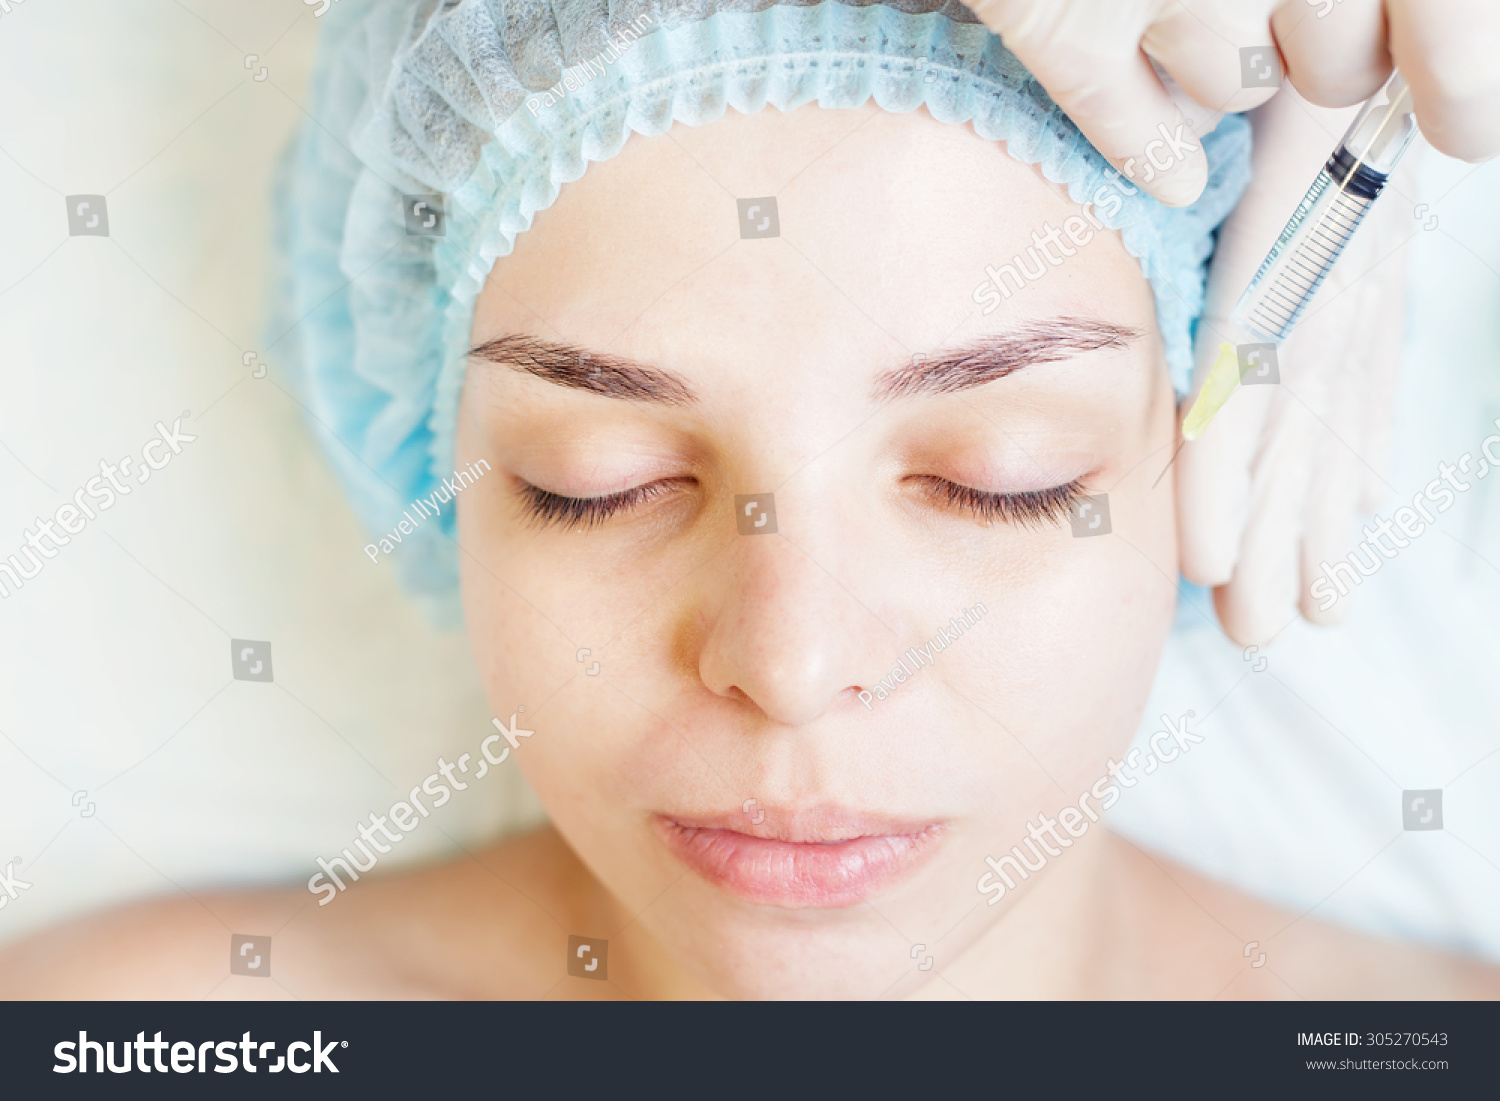 Cosmetologist spa beauty salon doing acne stock photo for Acne salon treatments